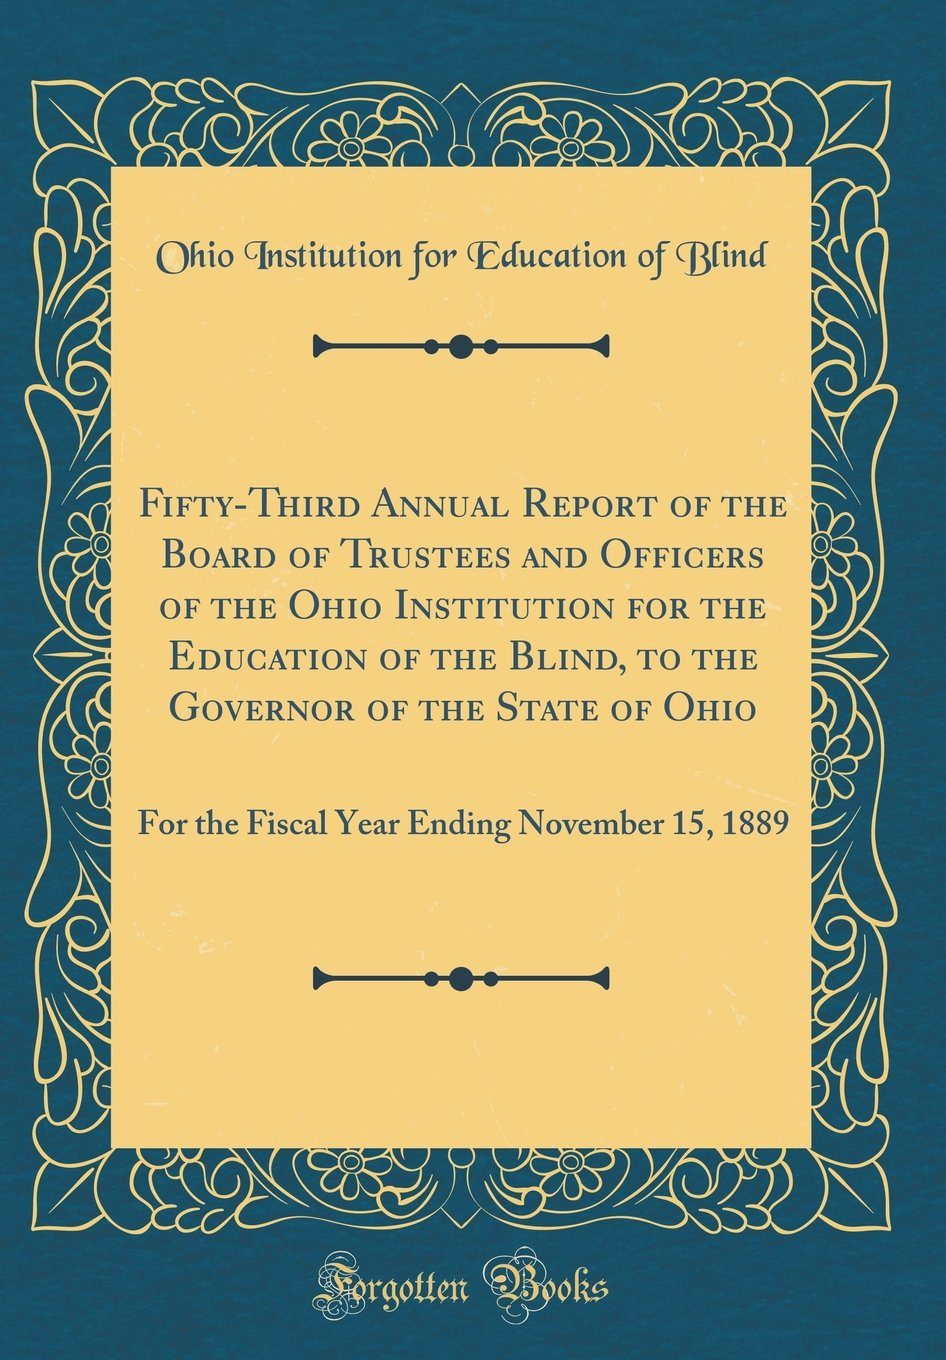 Fifty-Third Annual Report of the Board of Trustees and Officers of the Ohio Institution for the Education of the Blind, to the Governor of the State ... Ending November 15, 1889 (Classic Reprint) pdf